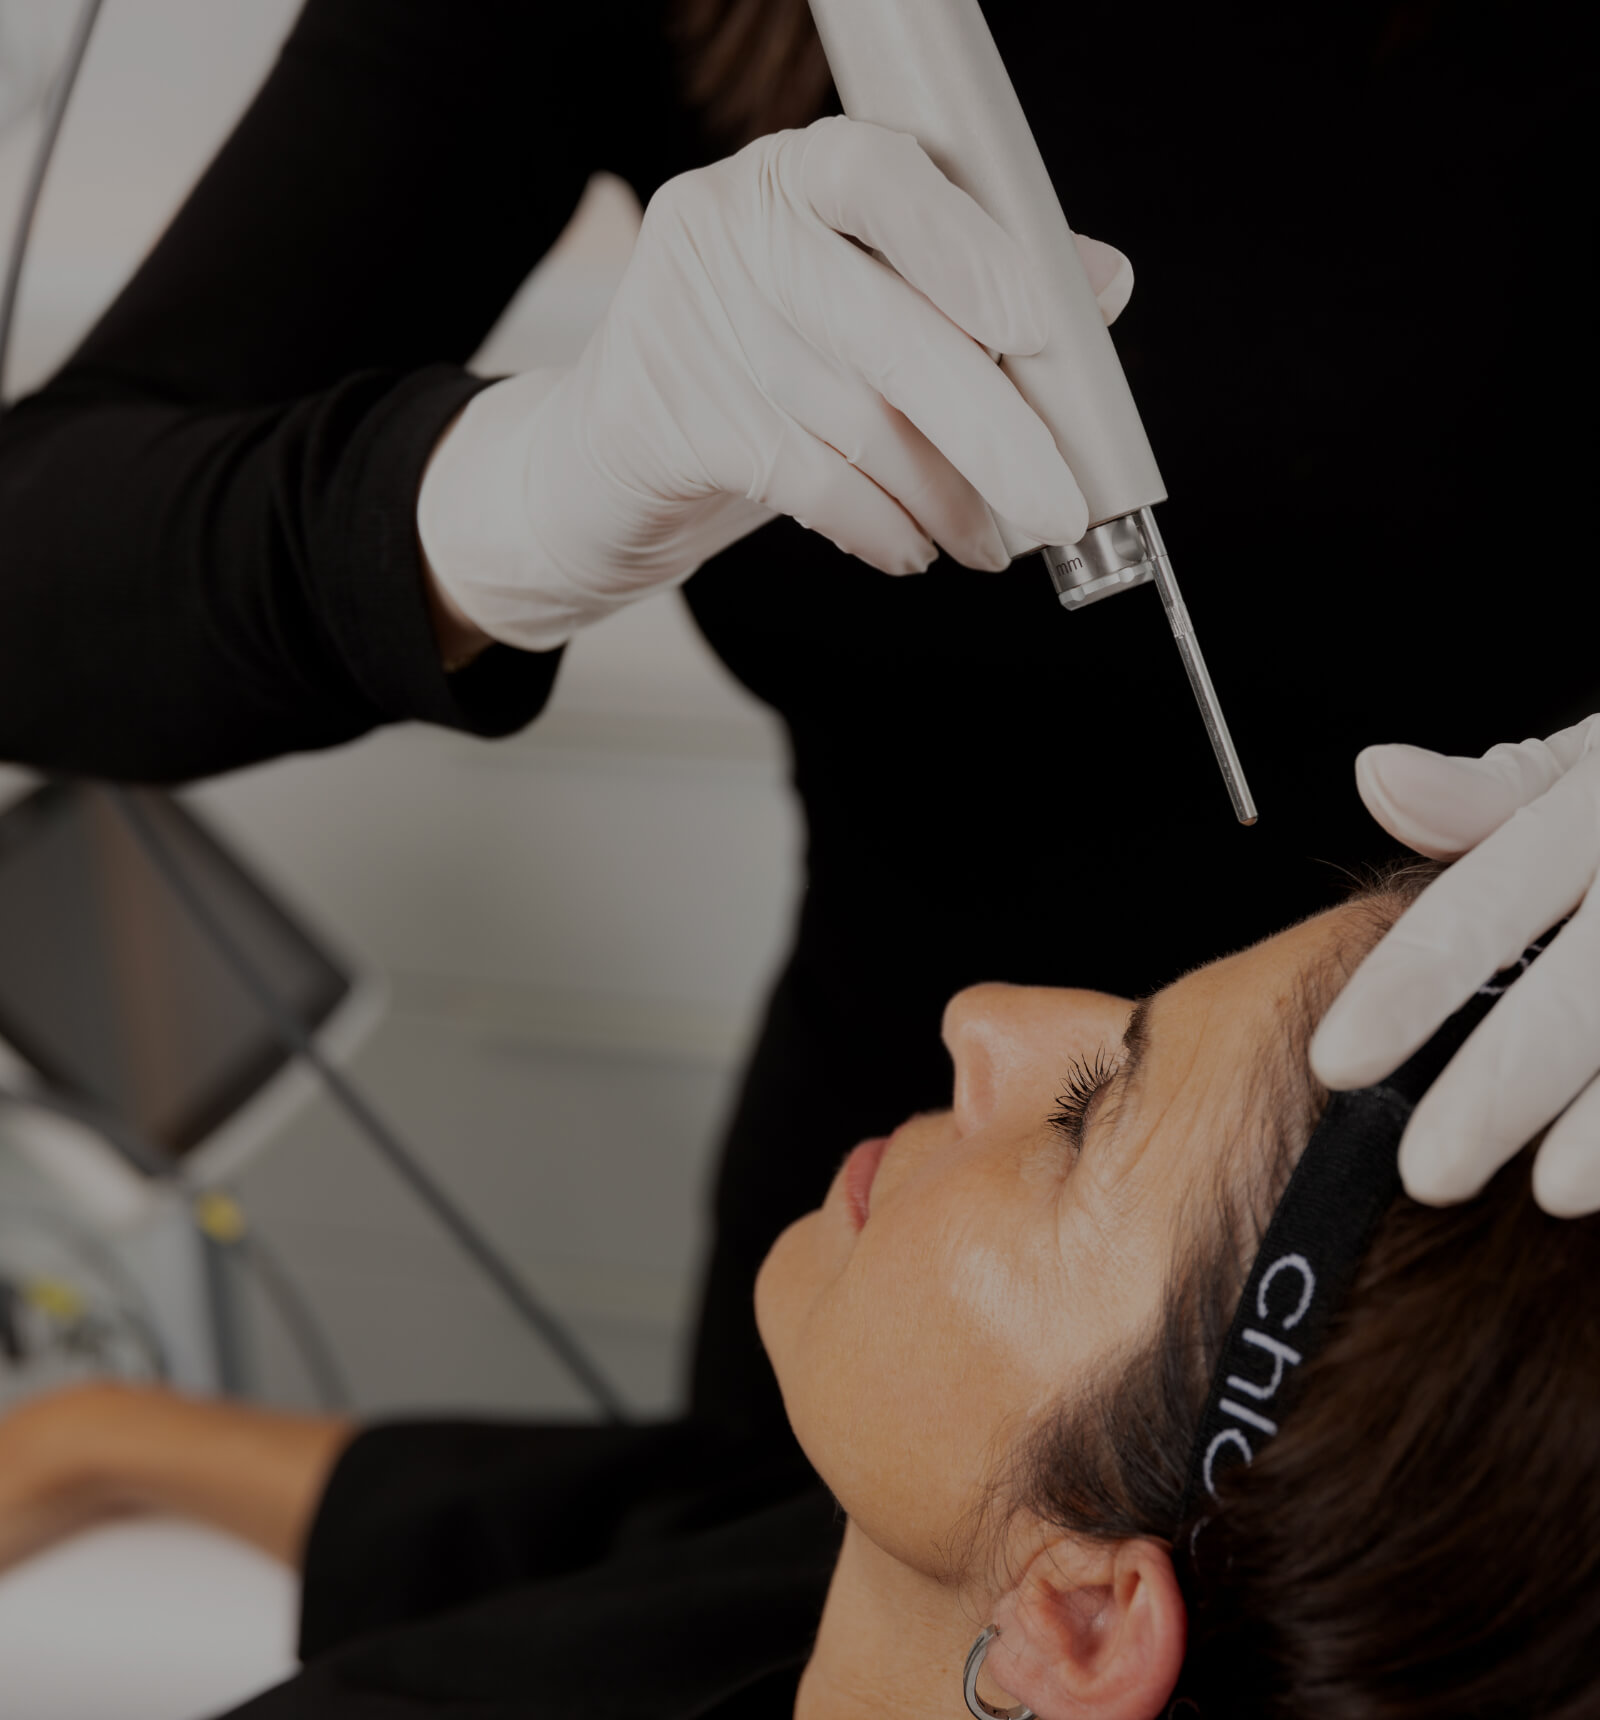 A medico-aesthetic technician from Clinique Chloé treating a patient's forehead with the Fotona Acne laser